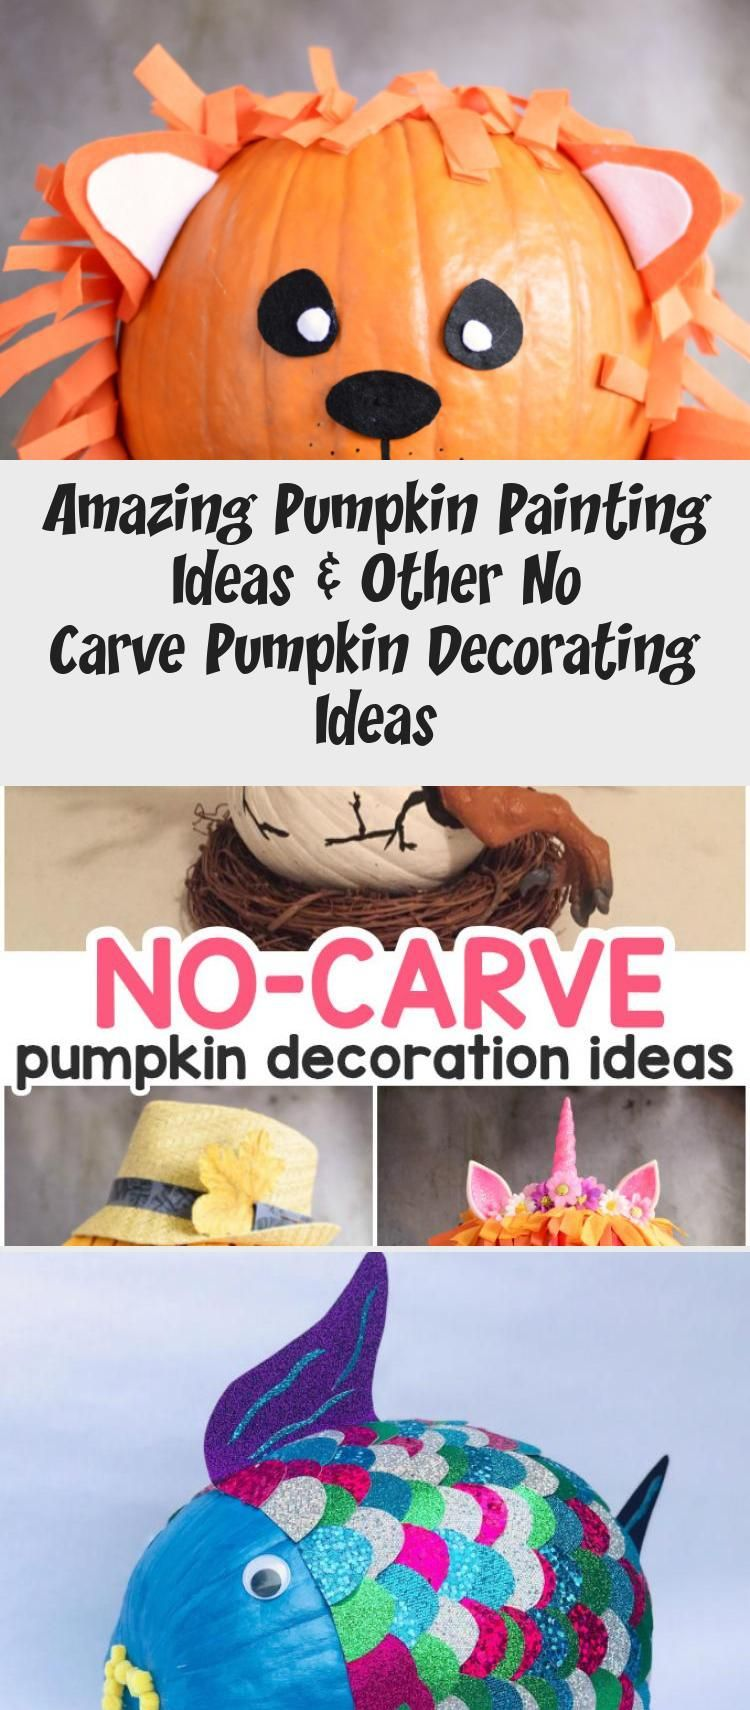 Amazing Pumpkin Painting Ideas & Other No Carve Pumpkin Decorating Ideas #Uniquepaintingideas #paintingideasForToddlers #paintingideasPencil #paintingideasEasy #paintingideasWatercolor #pumpkinpaintingideas